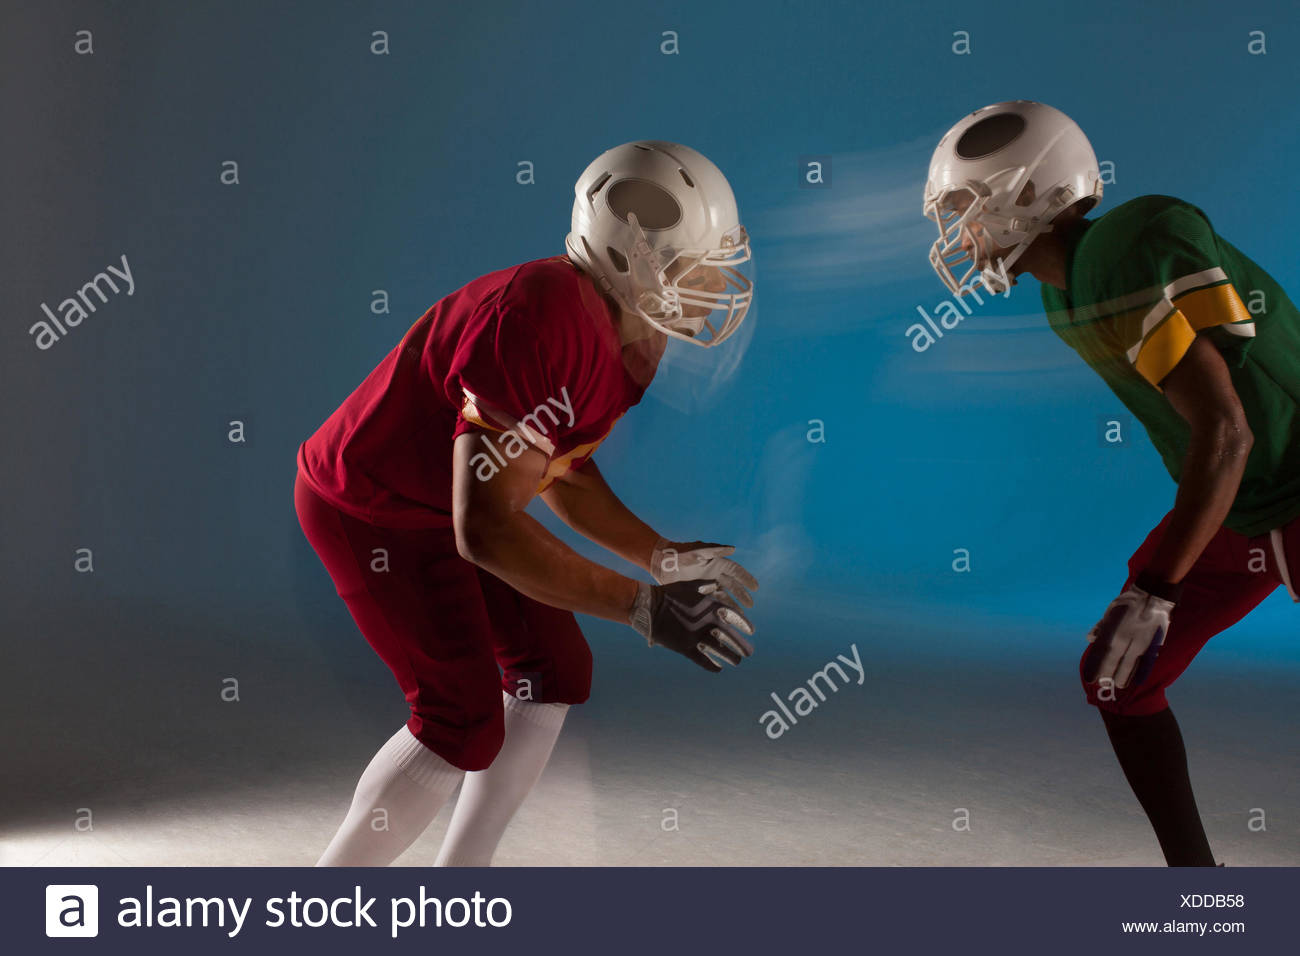 Blurred view of football players facing each other - Stock Image